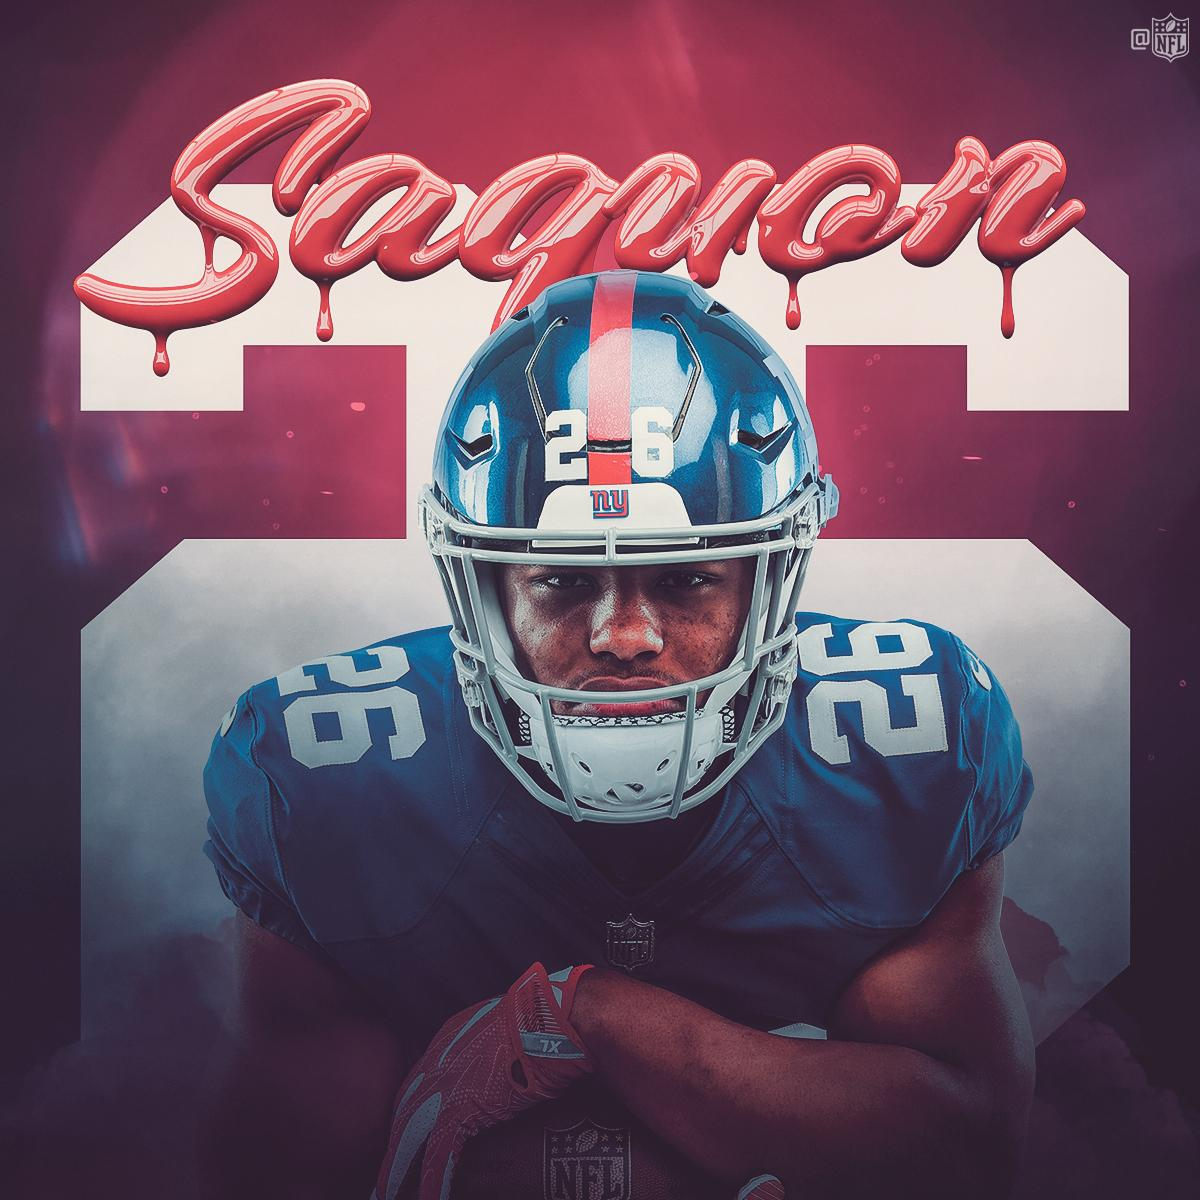 HAPPY BIRTHDAY to Offensive Rookie of the Year @saquon Barkley! ���� https://t.co/k0zqJbEoKT